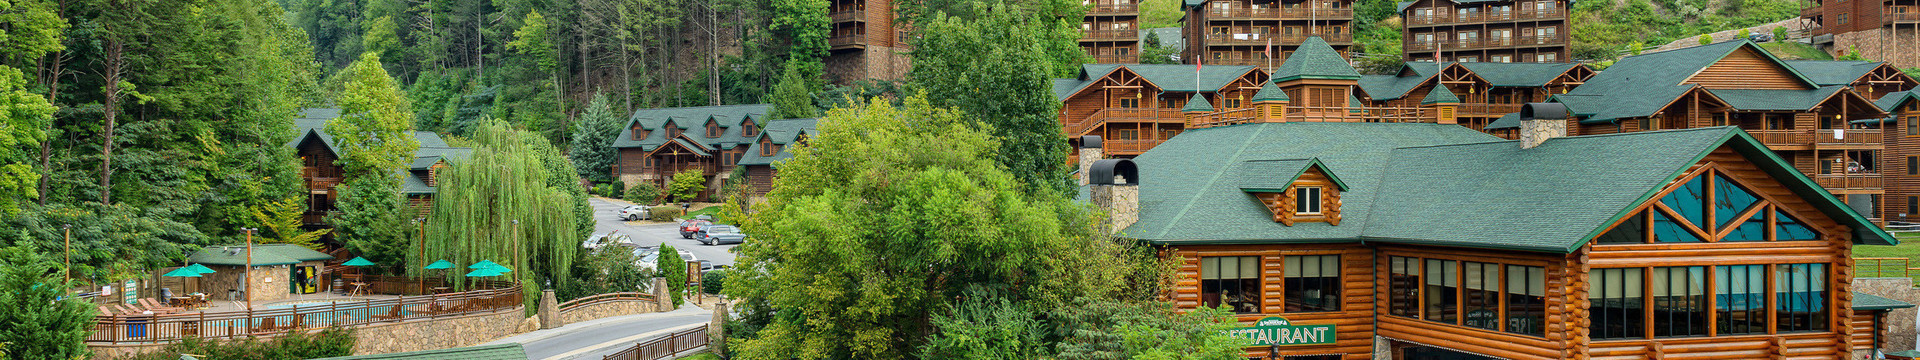 Does Westgate Mountain Smoky Resort & Spa offer free Wi-Fi - Westgate Smoky Mountain Resort & Spa